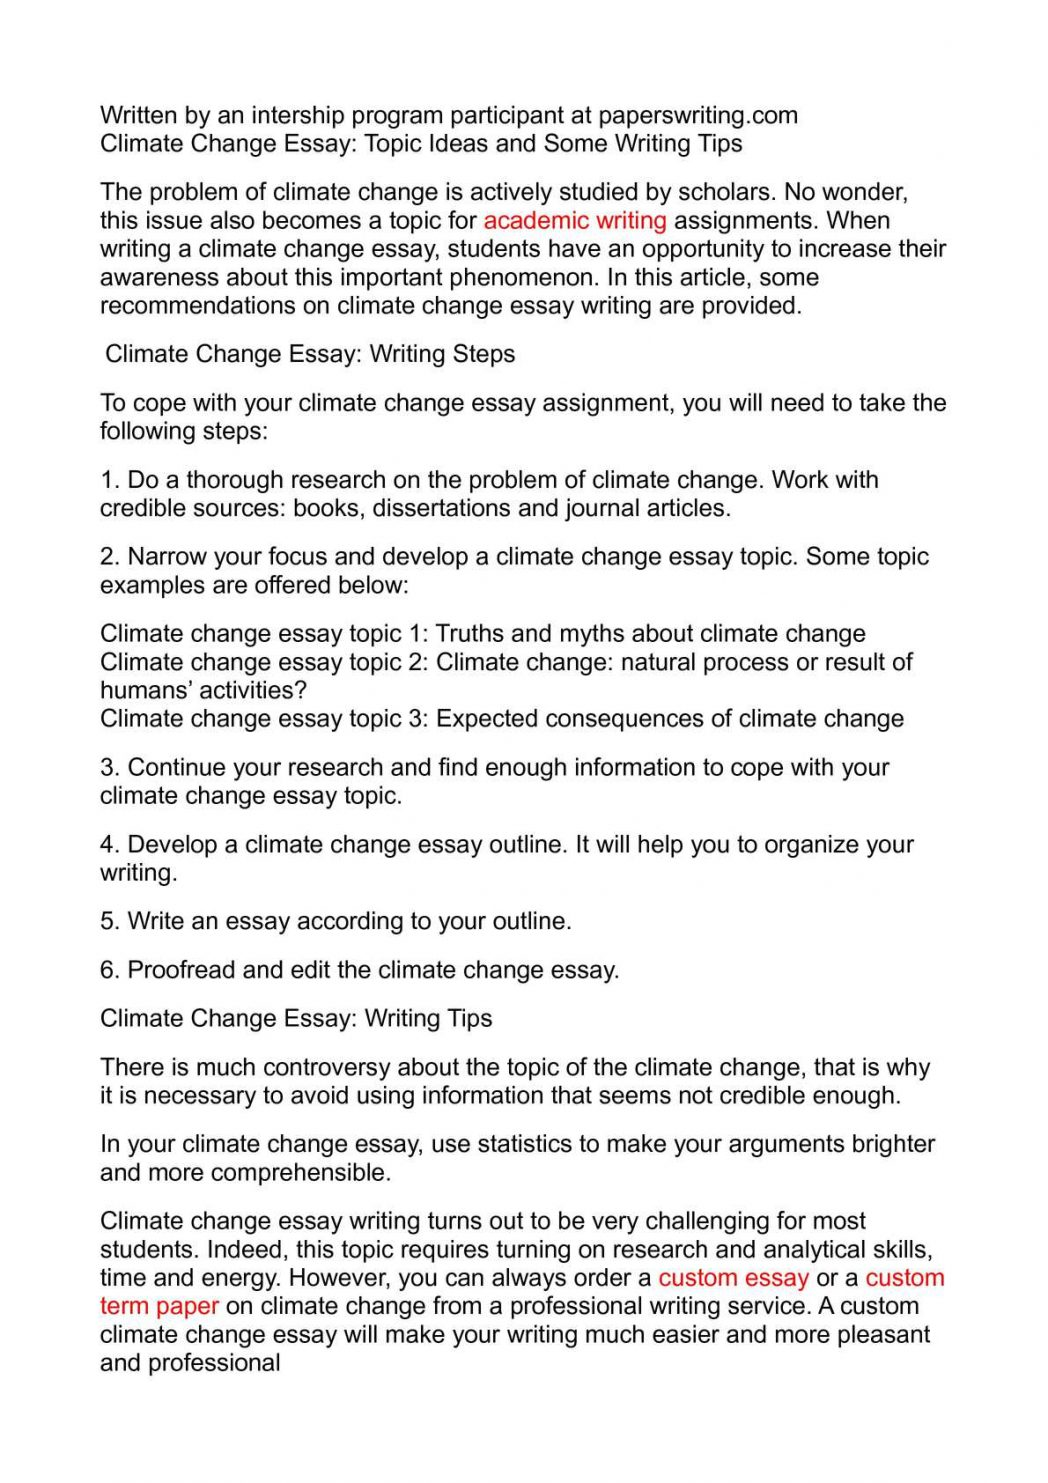 004 Global Climate Change Essay Warming And How To Write An Abo Argumentative On Persuasive Study Mode About Good Paper 1048x1483 Awesome High School In English 150 Words Kenya Art Competition 2018 Full